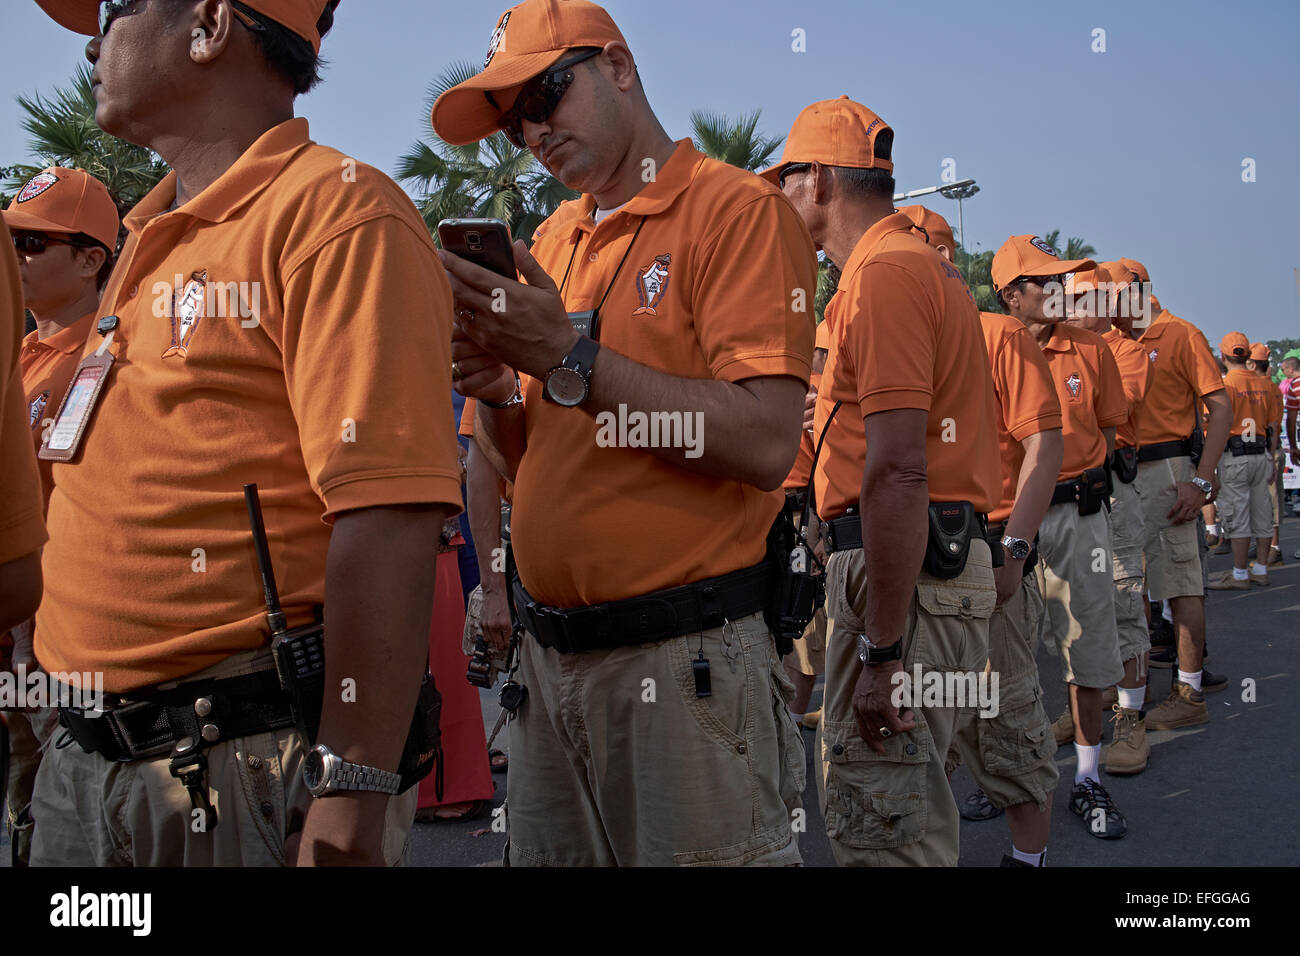 Distinctive orange dress code of the tourist police force in Pattaya Thailand S. E. Asia - Stock Image